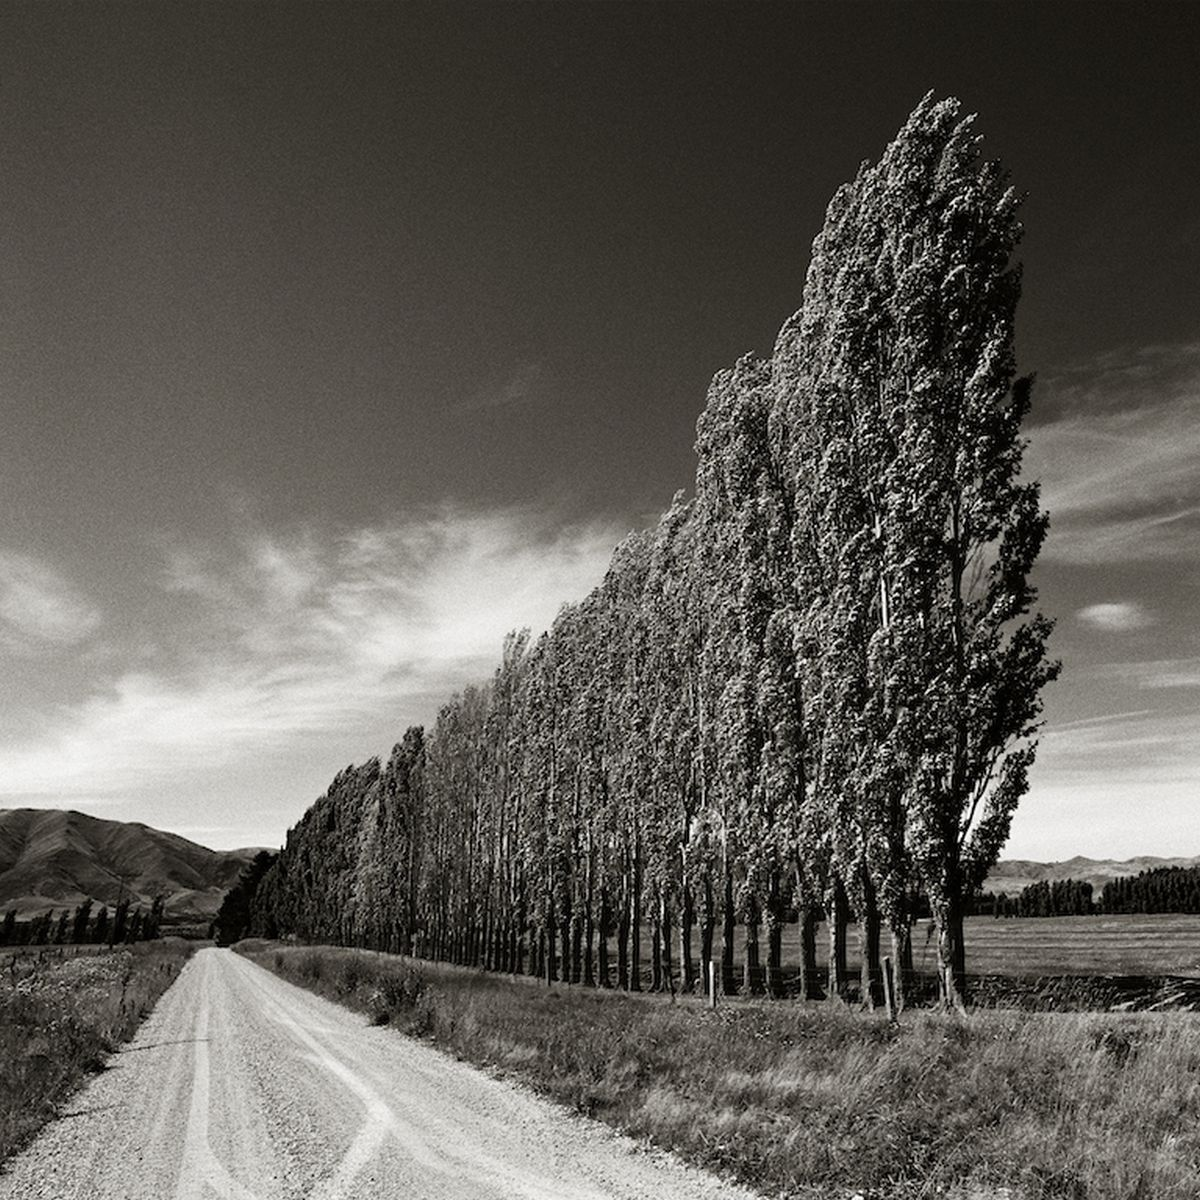 CARNETS DE VOYAGE. CHRIS SIMPSON. Poplars, South Island, New Zeland, 2003. Archival pigment print.